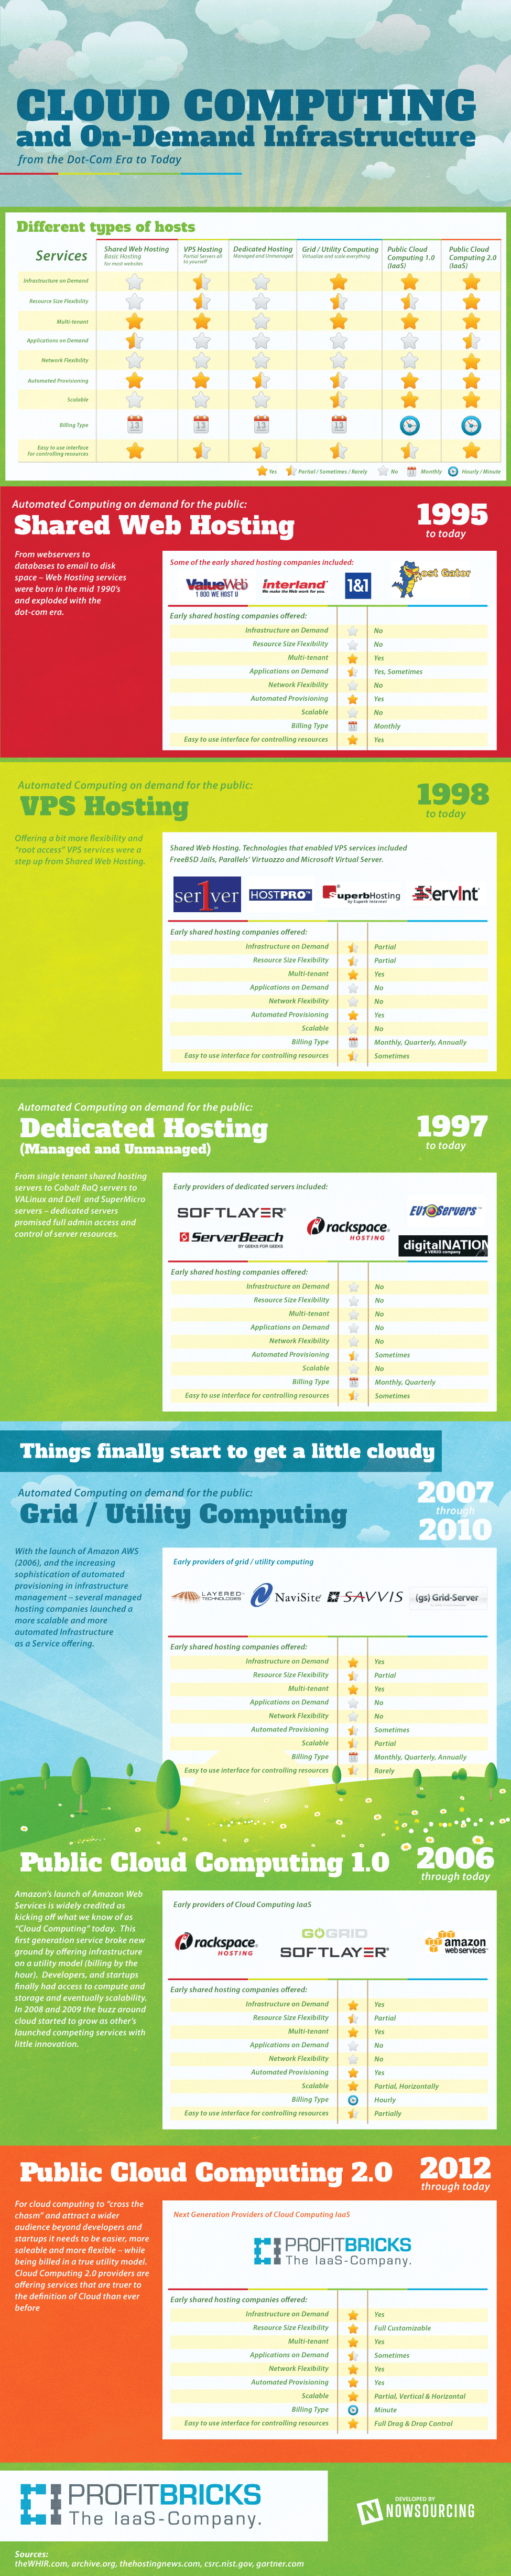 Cloud-Computing-On-Demand-Infrastructure-Infographic